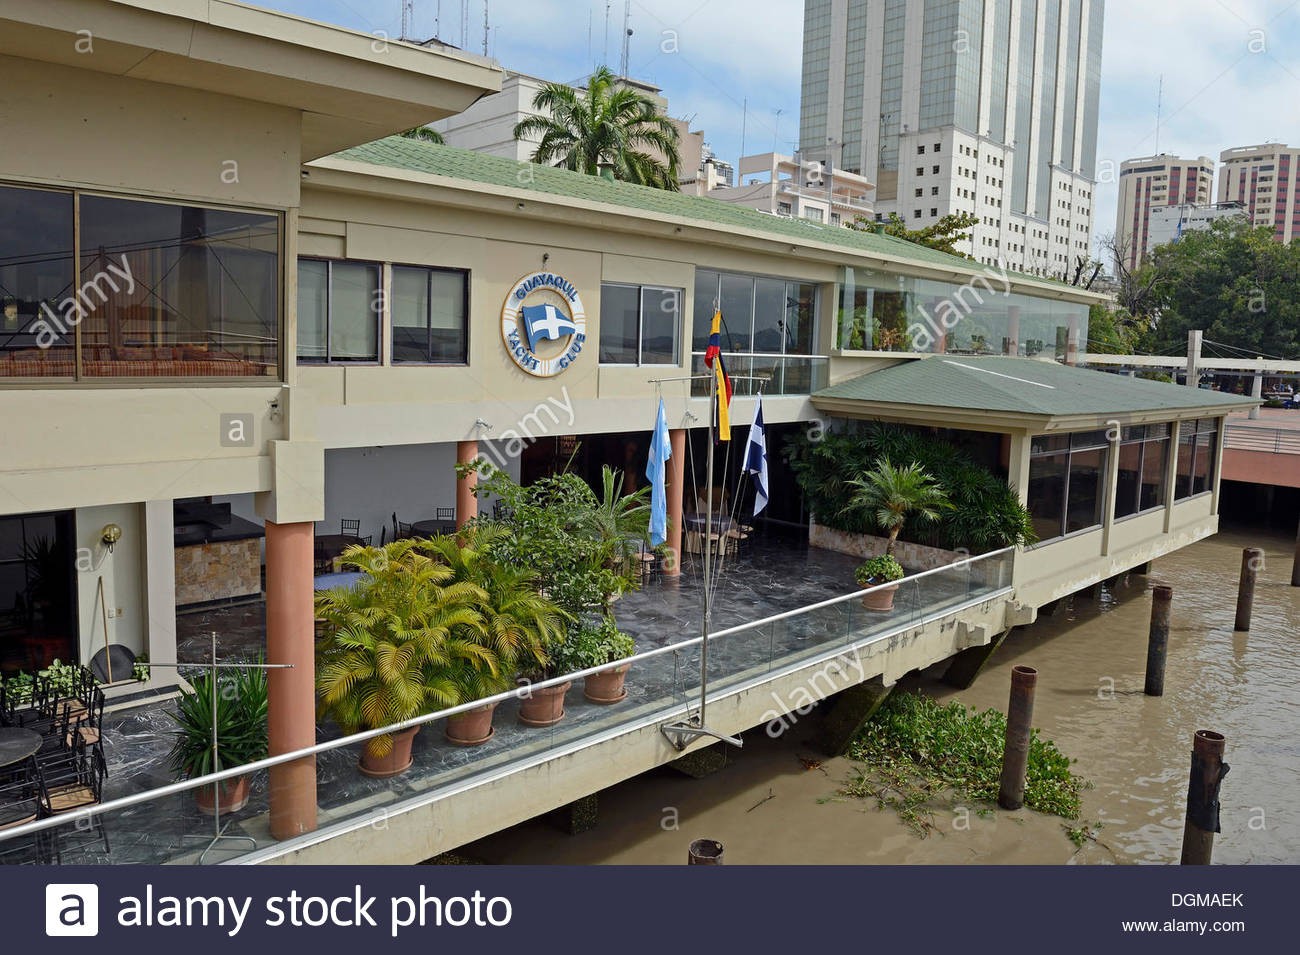 Yacht Club Guayaquil, Yacht Club of Guayaquil on the waterfront promenade of Malecon ...